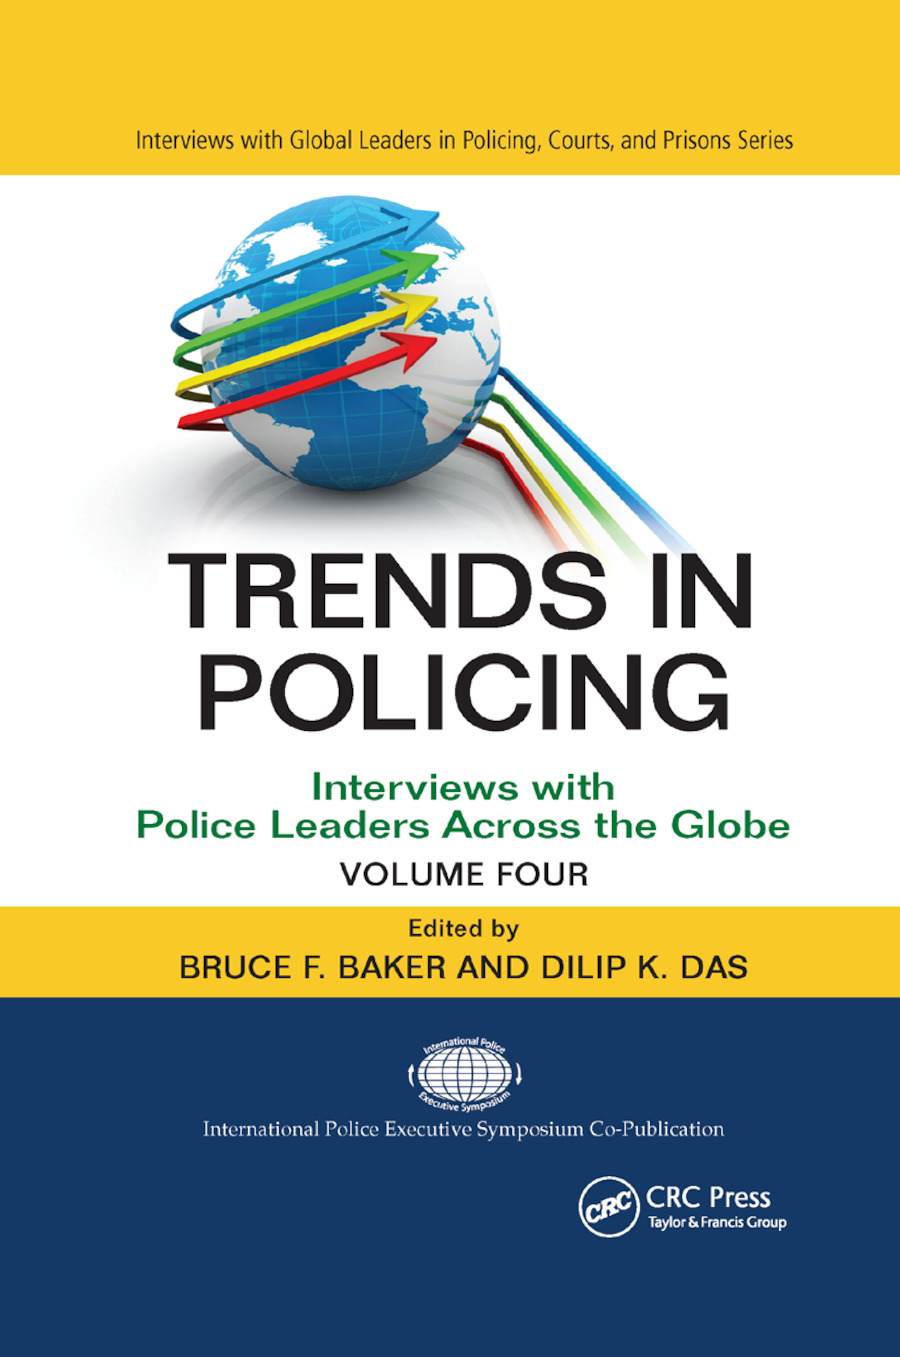 Trends in Policing: Interviews with Police Leaders Across the Globe, Volume Four book cover